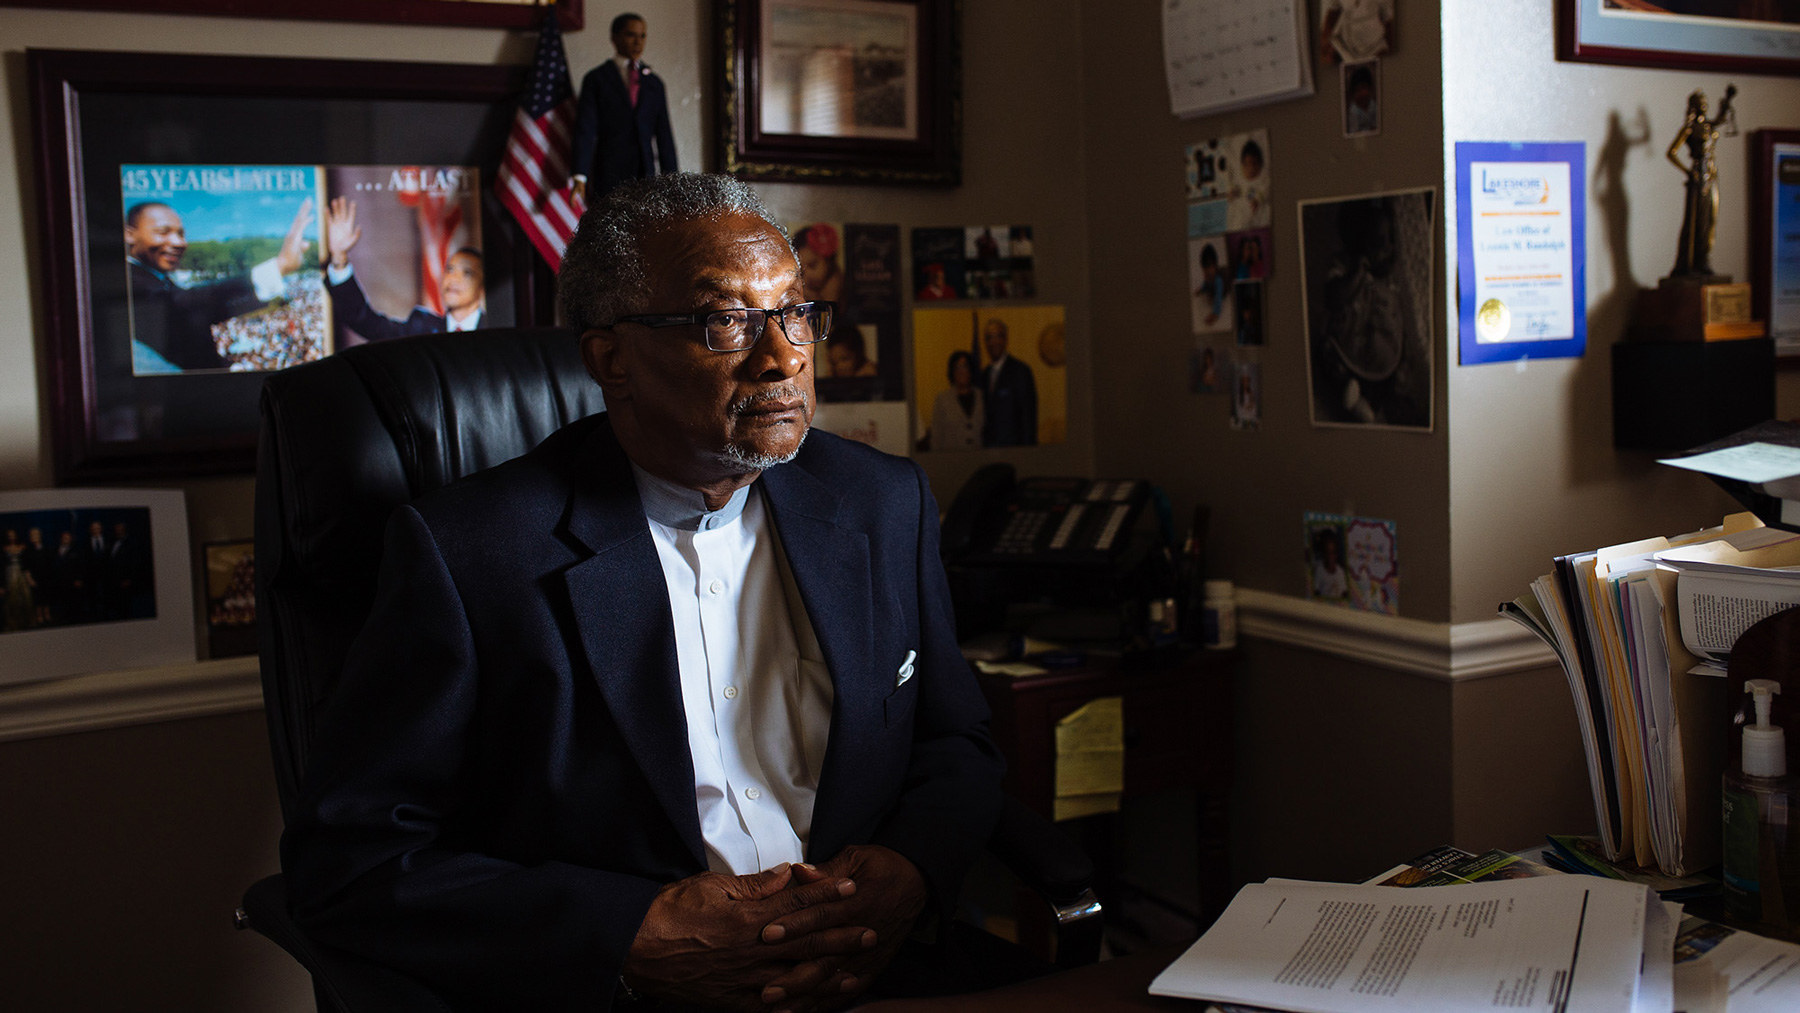 Indiana state Sen. Lonnie Randolph was born and raised in East Chicago near the USS Lead Superfund site. His ties to his community have made him a vocal advocate for his constituents. (Michael M. Santiago/News21)